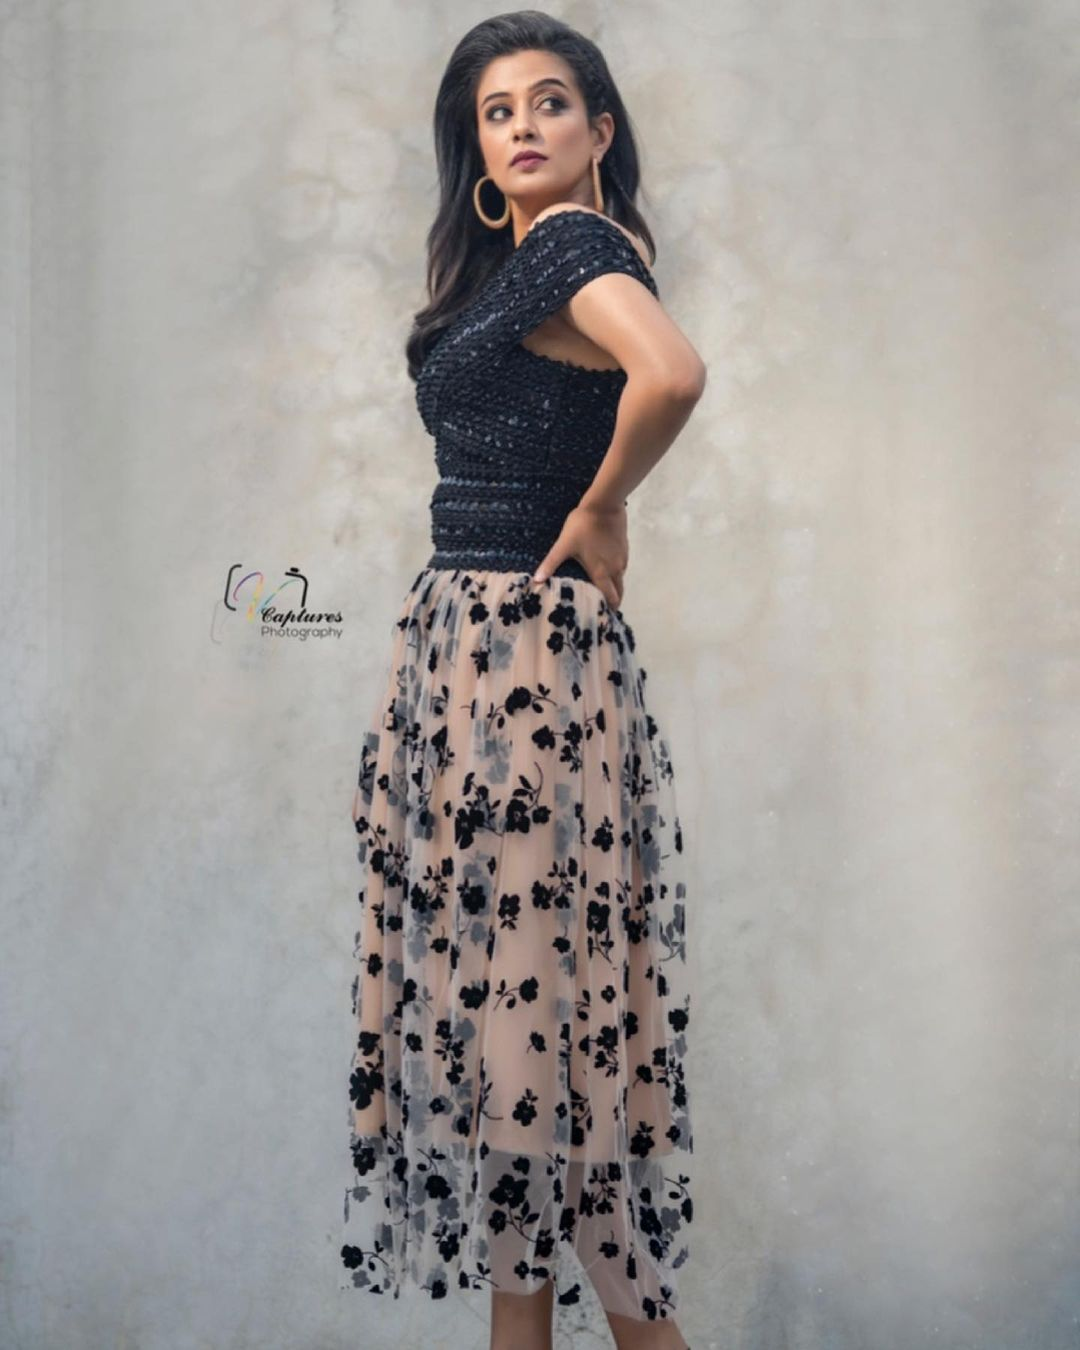 Beautiful actress Priyamani in skirt and off shoulder sequin top. 2021-06-23